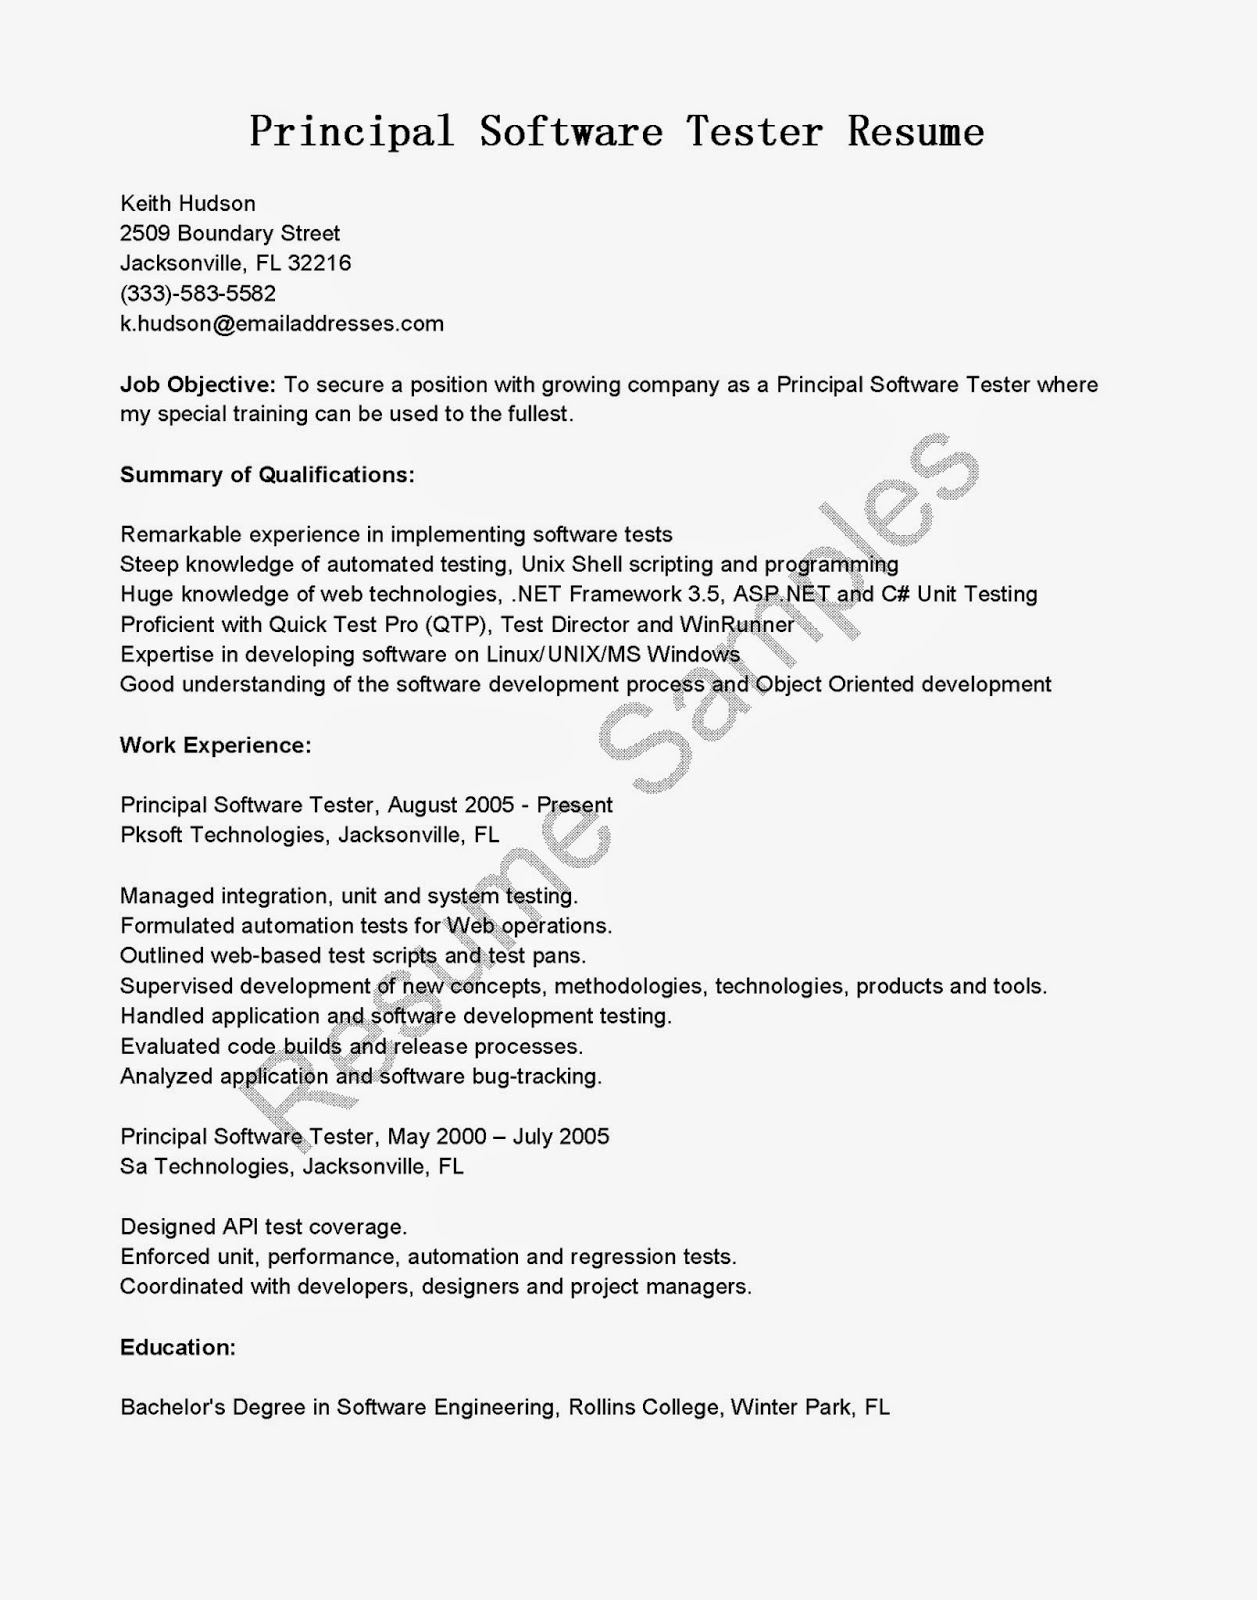 sample resume software engineer years experience resume - Sample Resume Software Tester